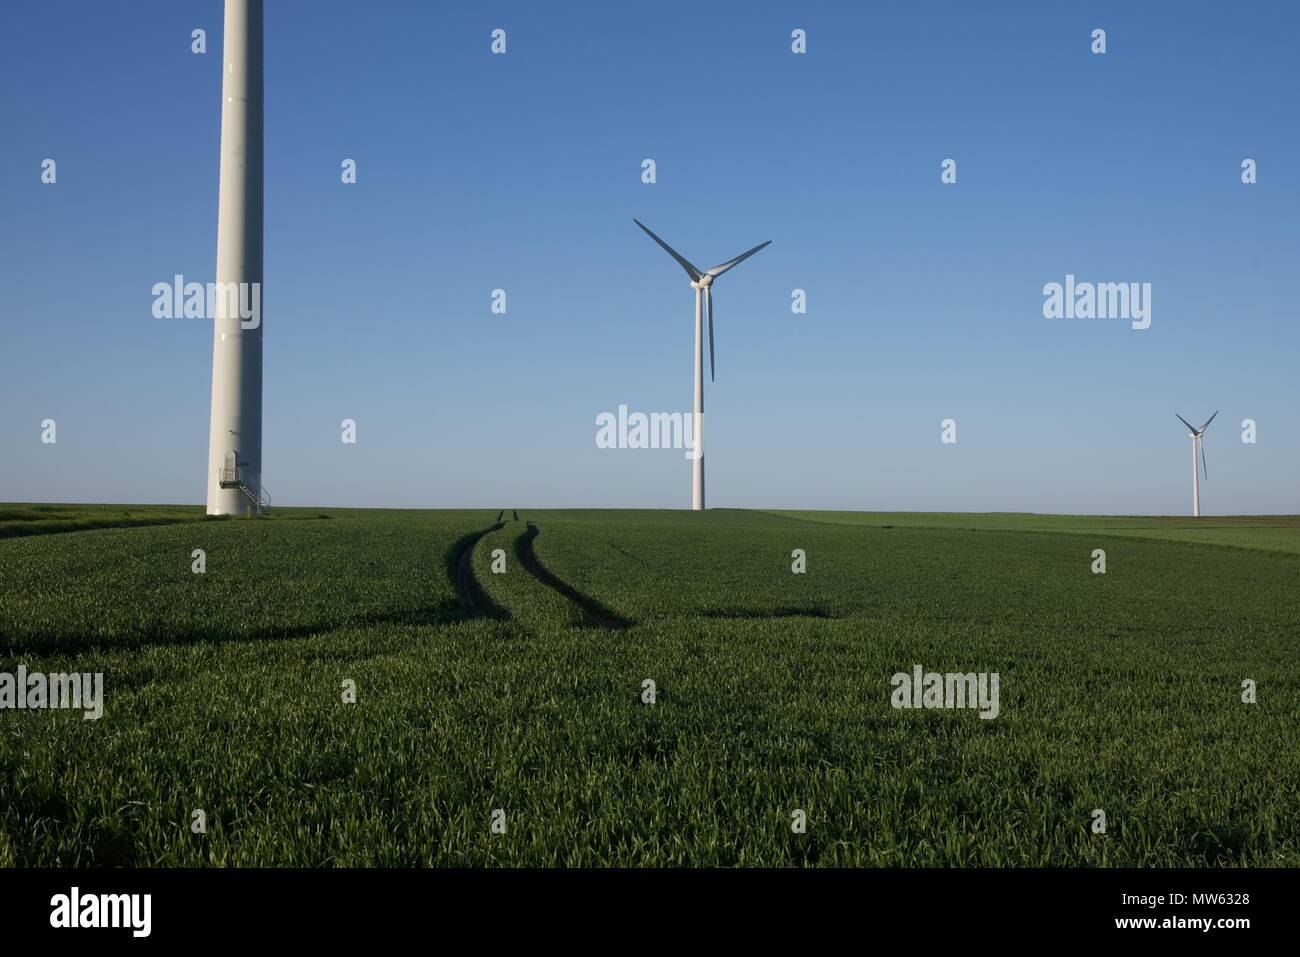 Wind turbines: a group of three wind turbines amongst a farmers growing - Stock Image